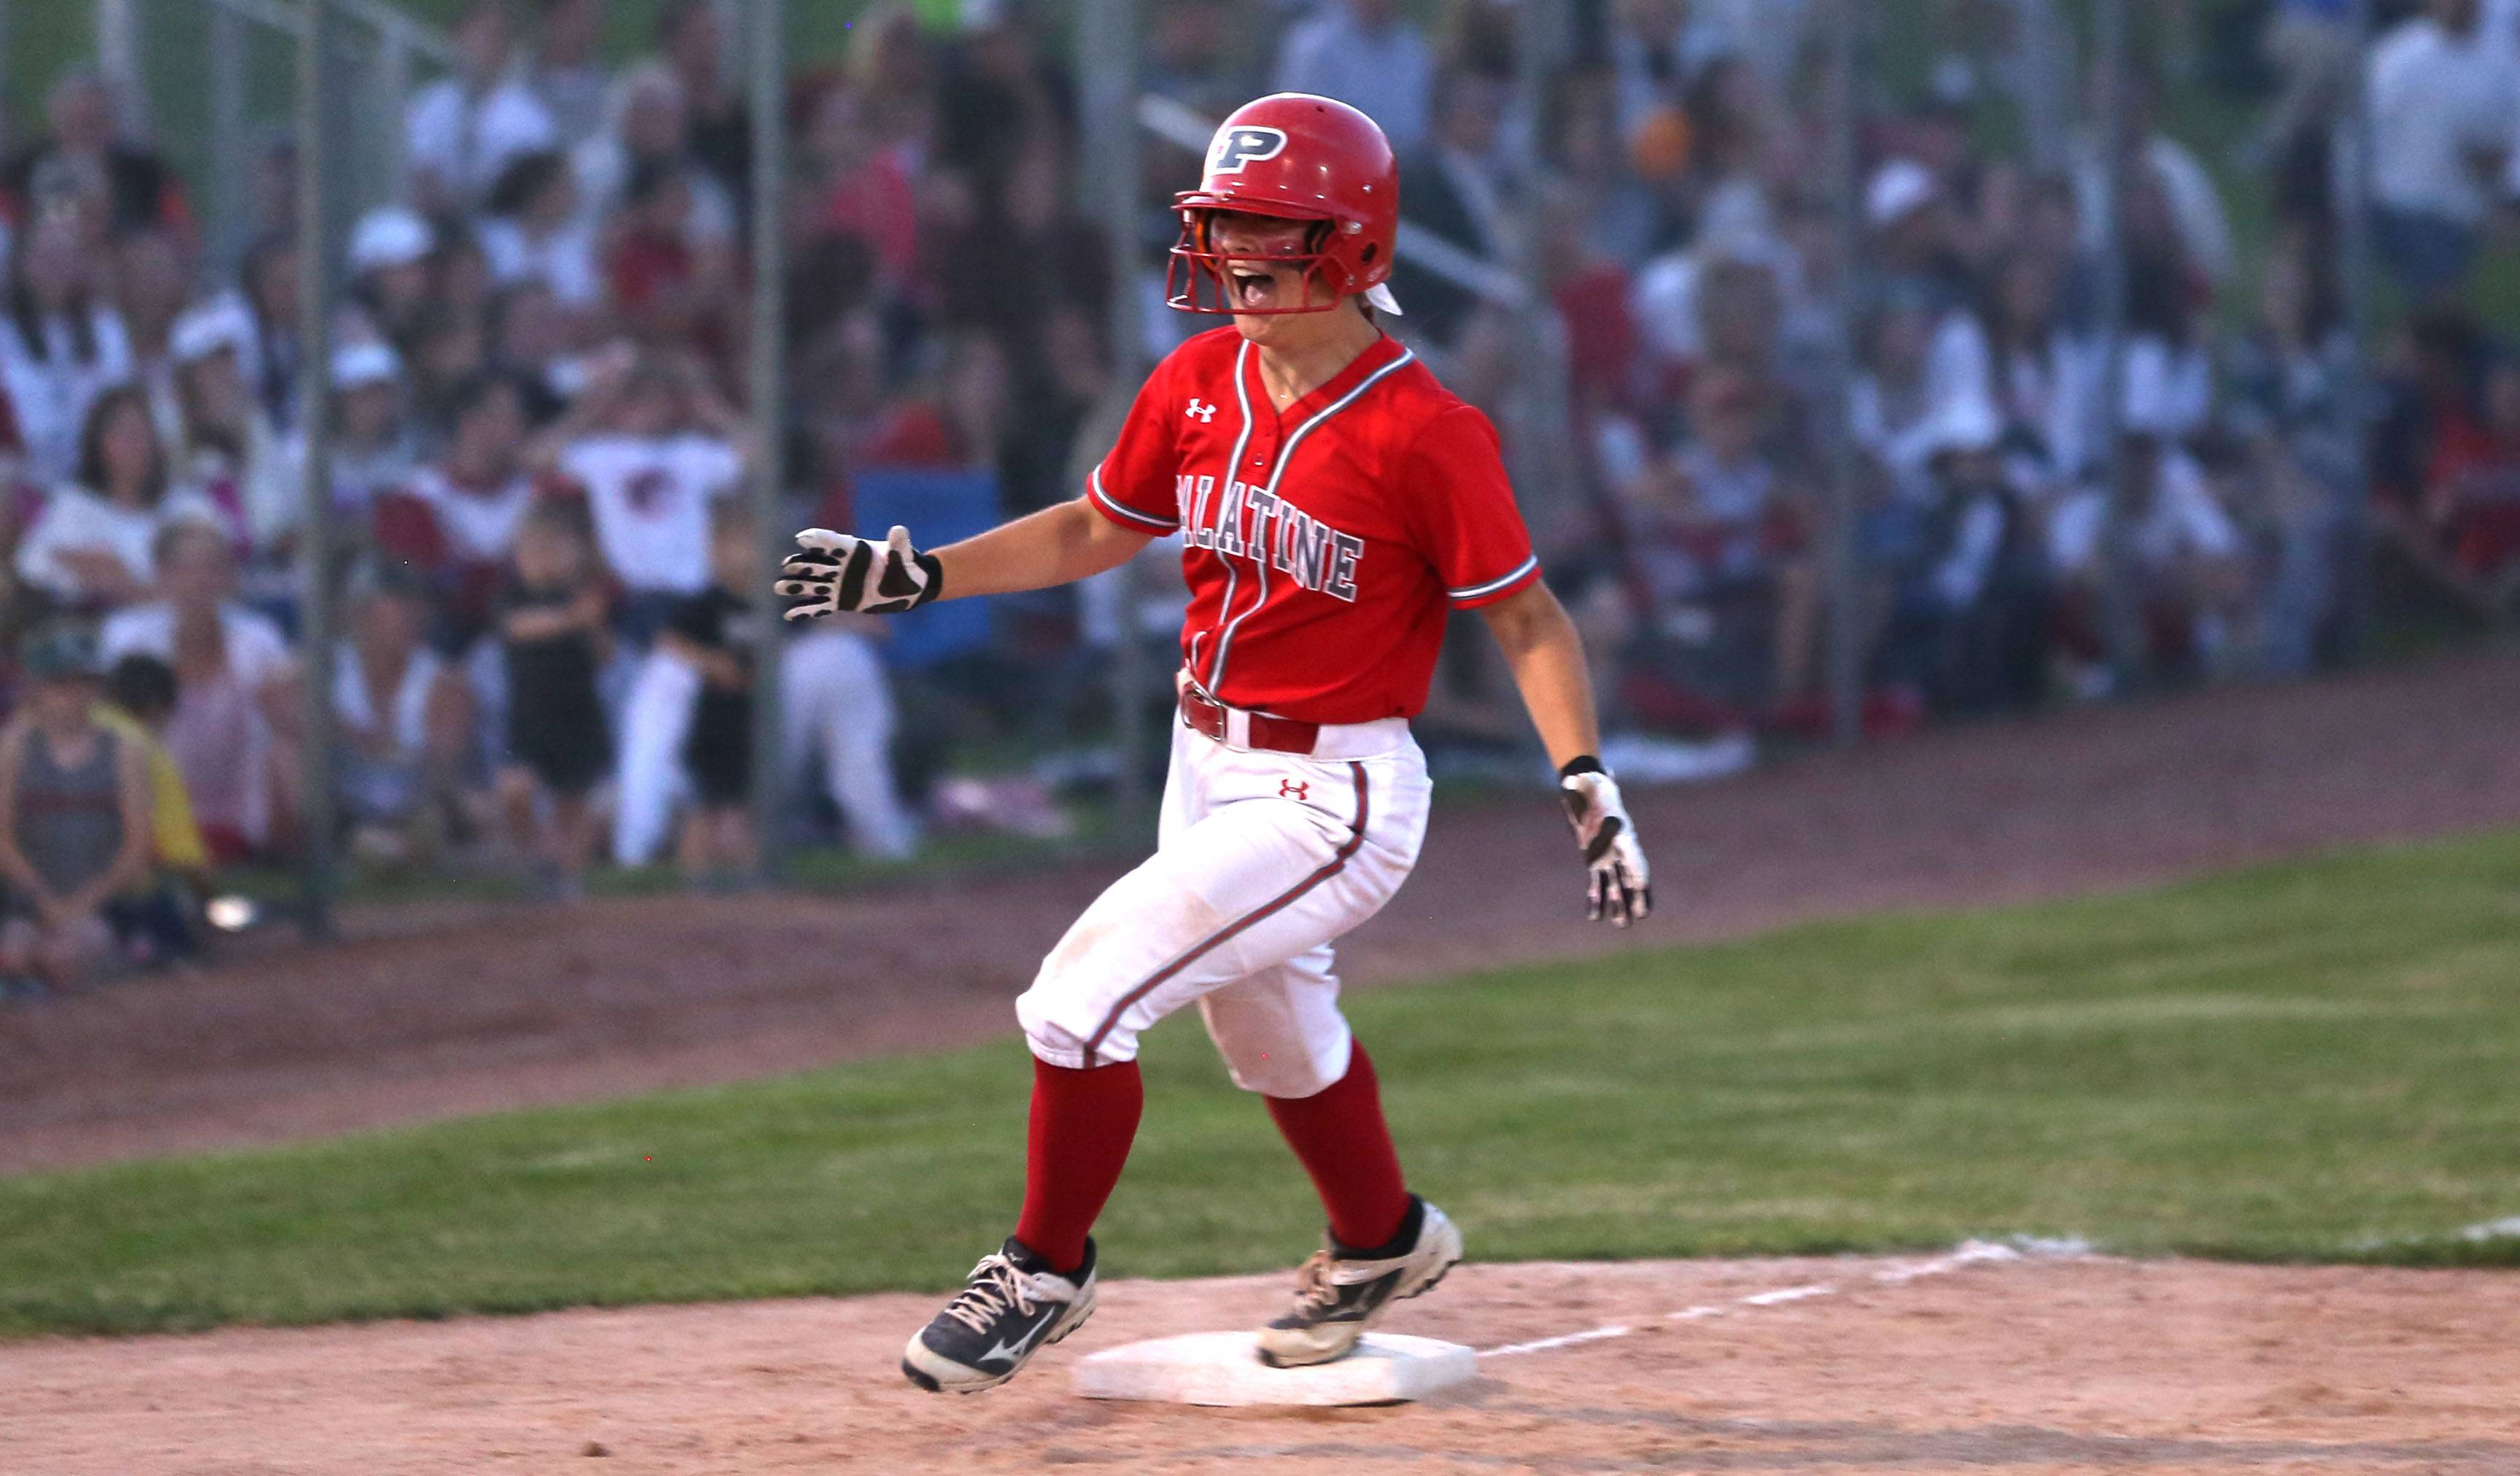 Palatine's Kaitlyn Reed is all smiles rounding third base after slugging a 3-run homer in Class 4A supersectional action at Barrington on Monday night.